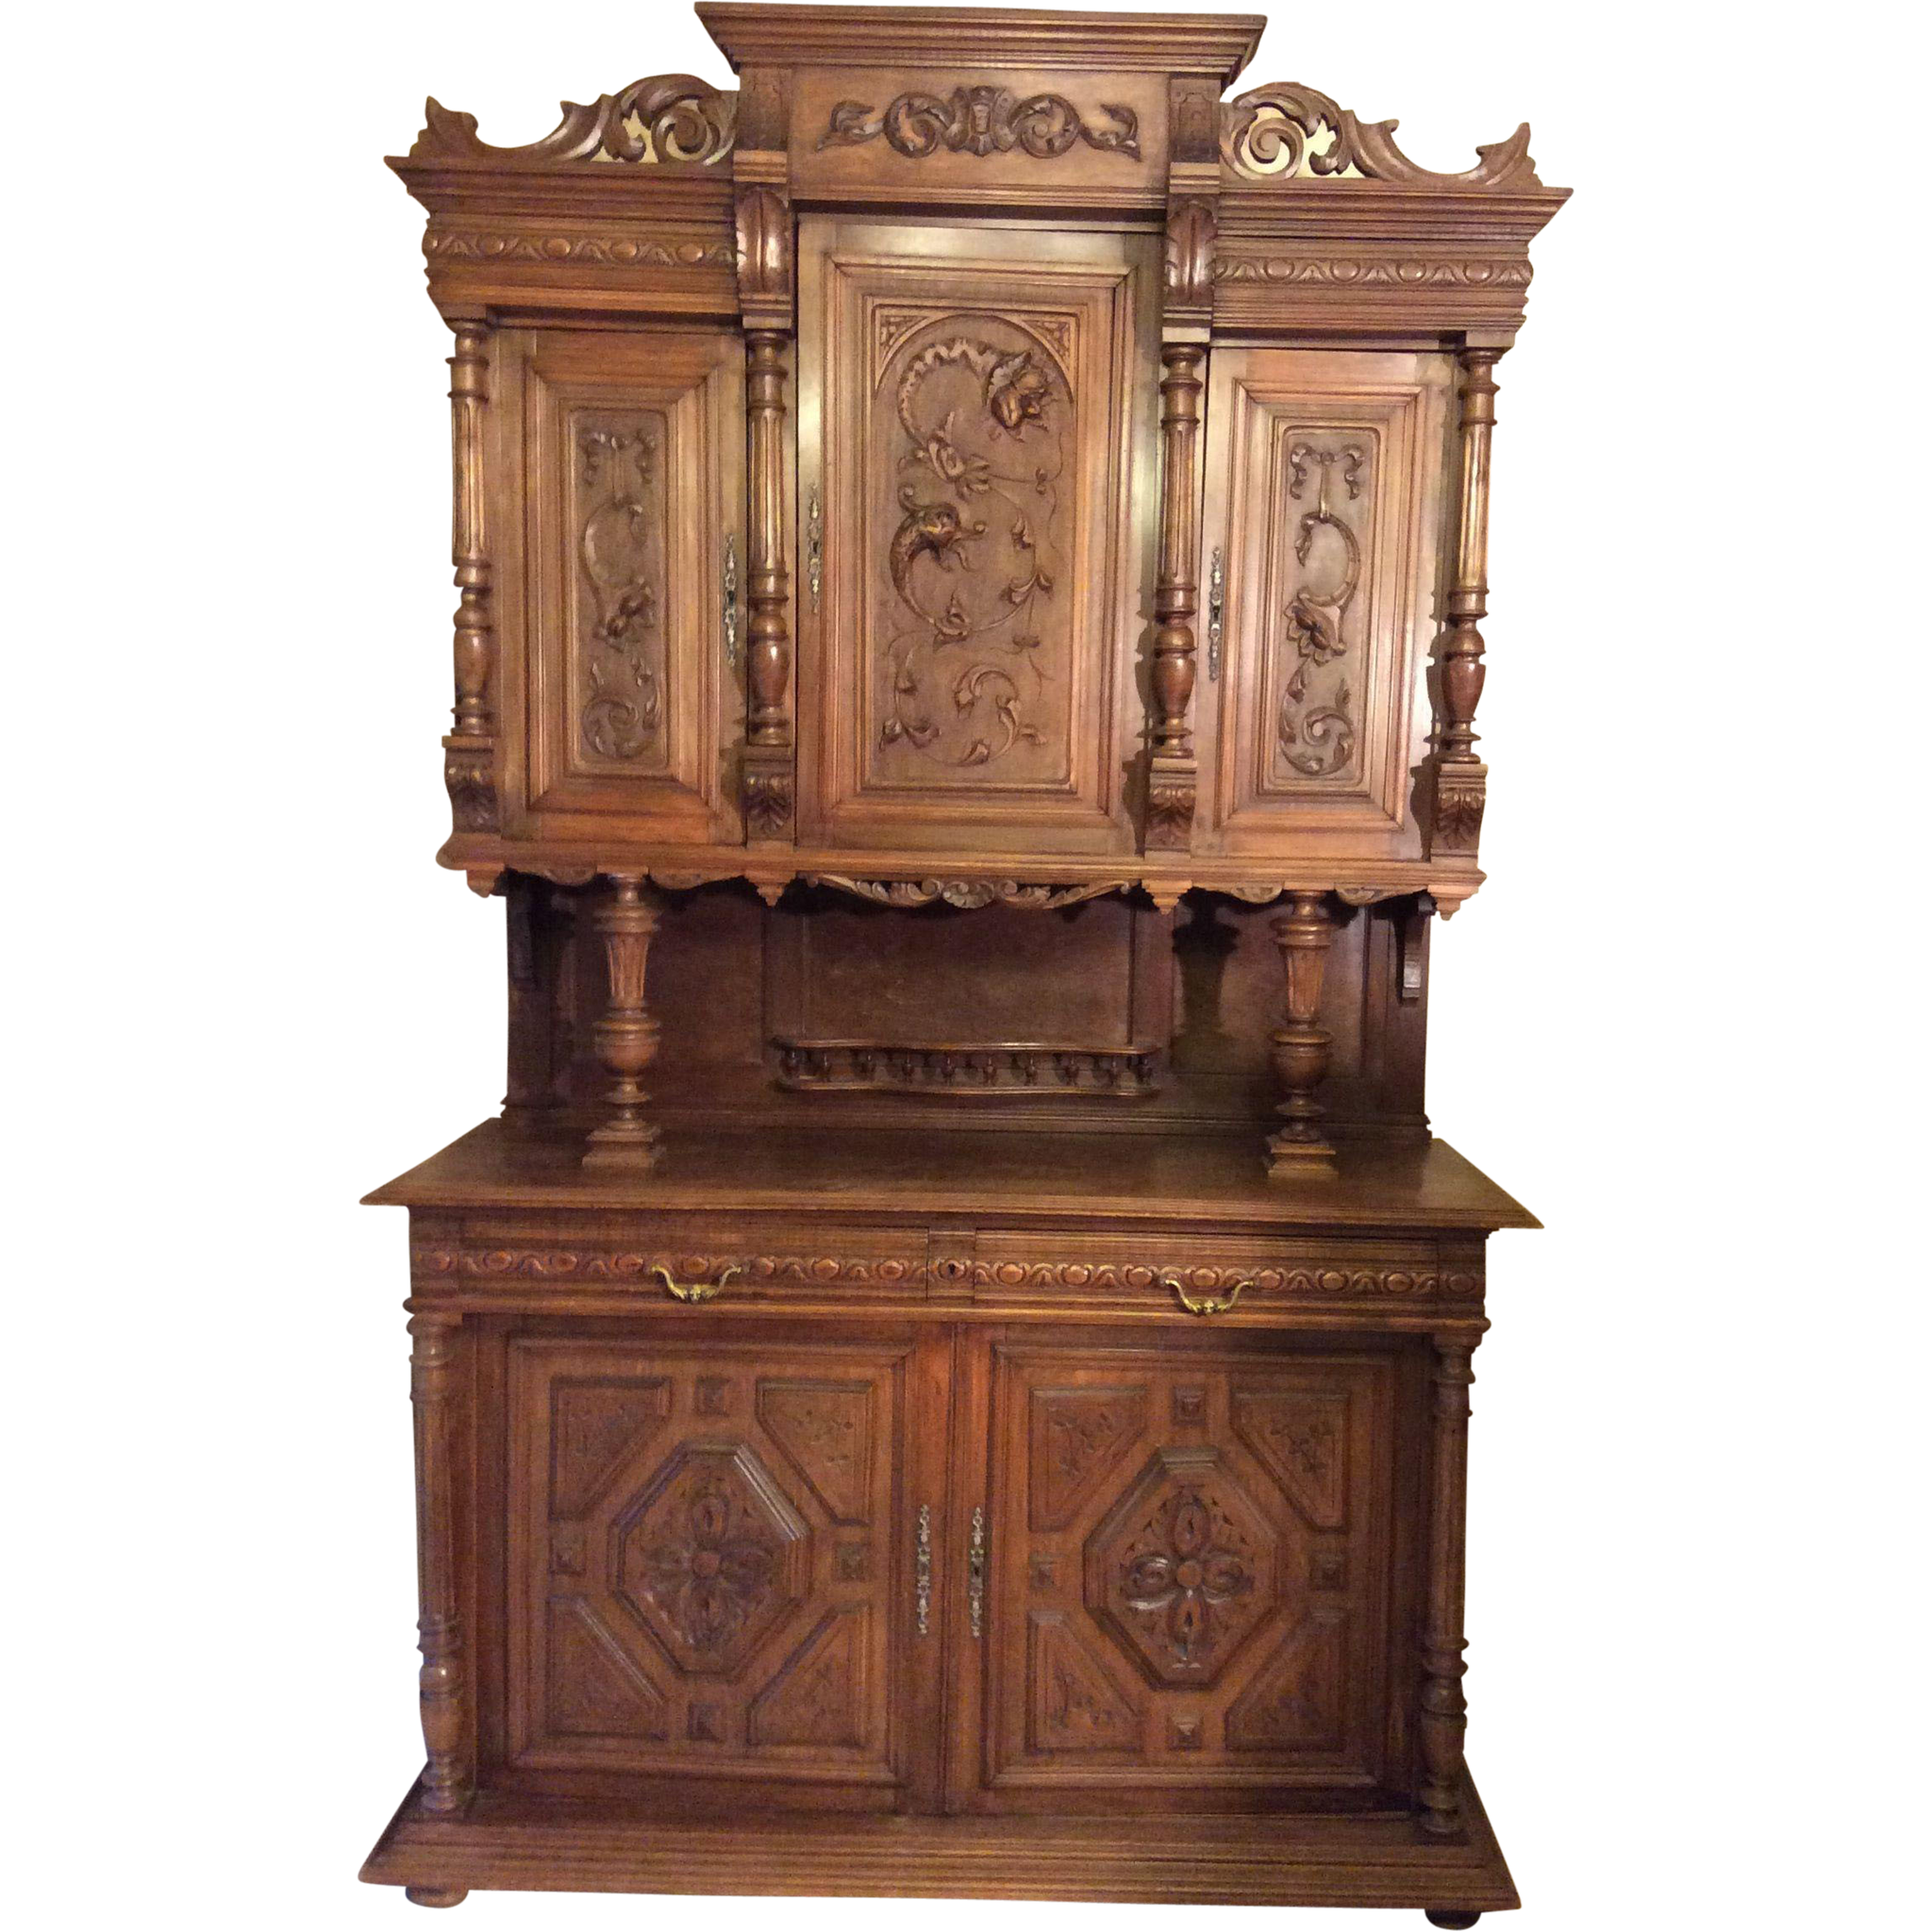 Muebles Restaurados Vintage French Henri Ii Style Hutch With Intricate Carvings